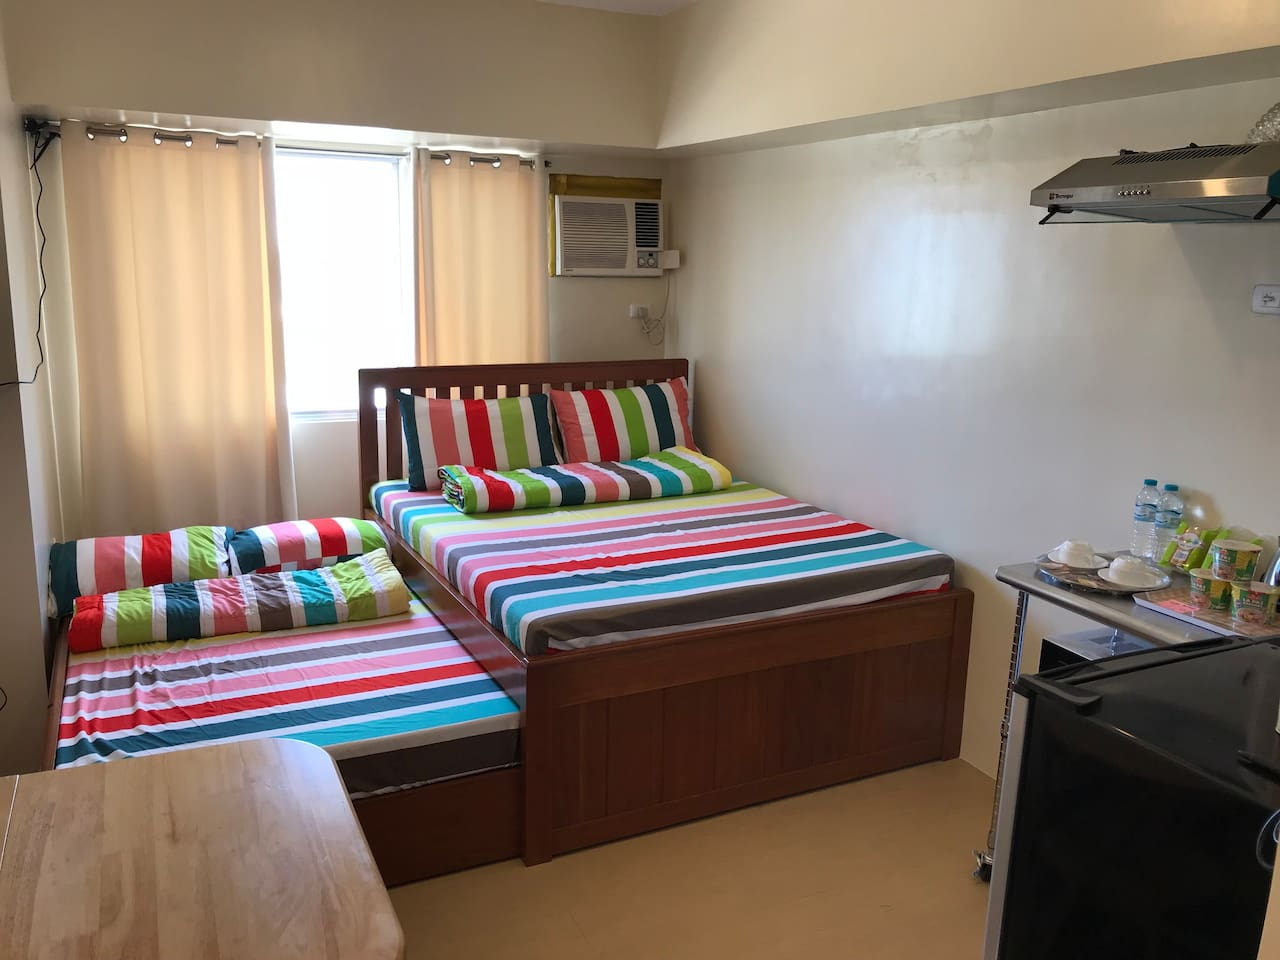 my unit and it's bed provided can accommodate a small group of friends, family or office mates. ü